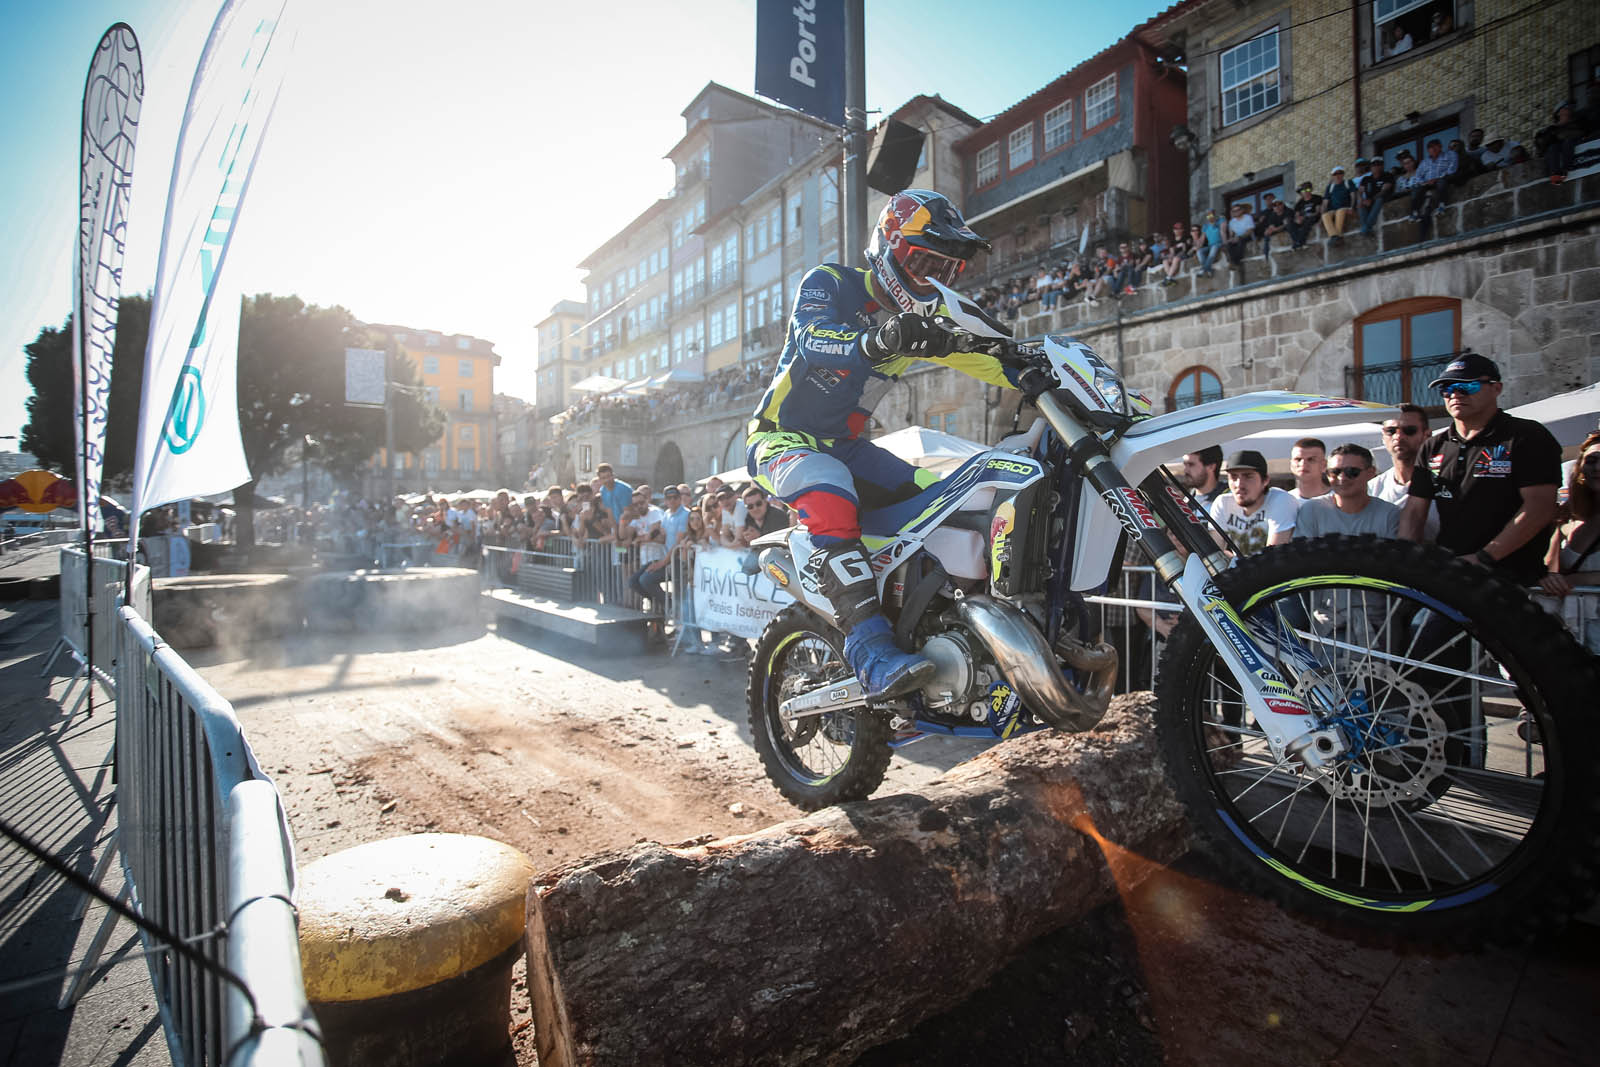 Wade Young races at Toyota Porto Extreme XL Lagares, Portugal on May 11, 2019